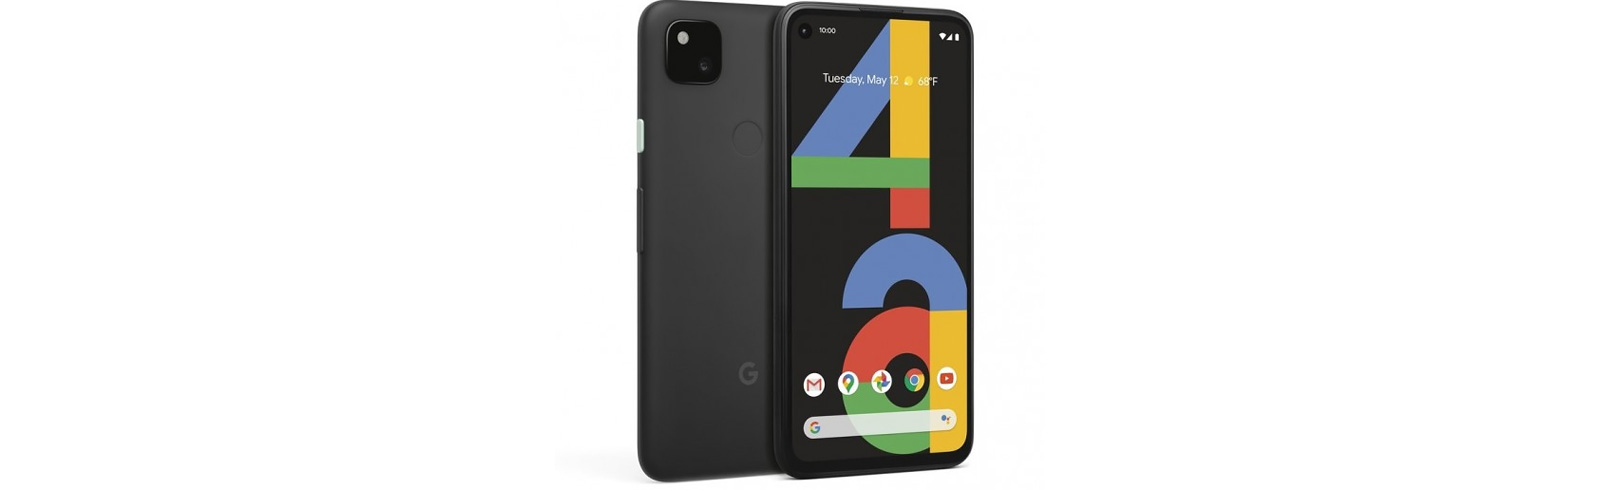 Google Pixel 4A - specifications and prices